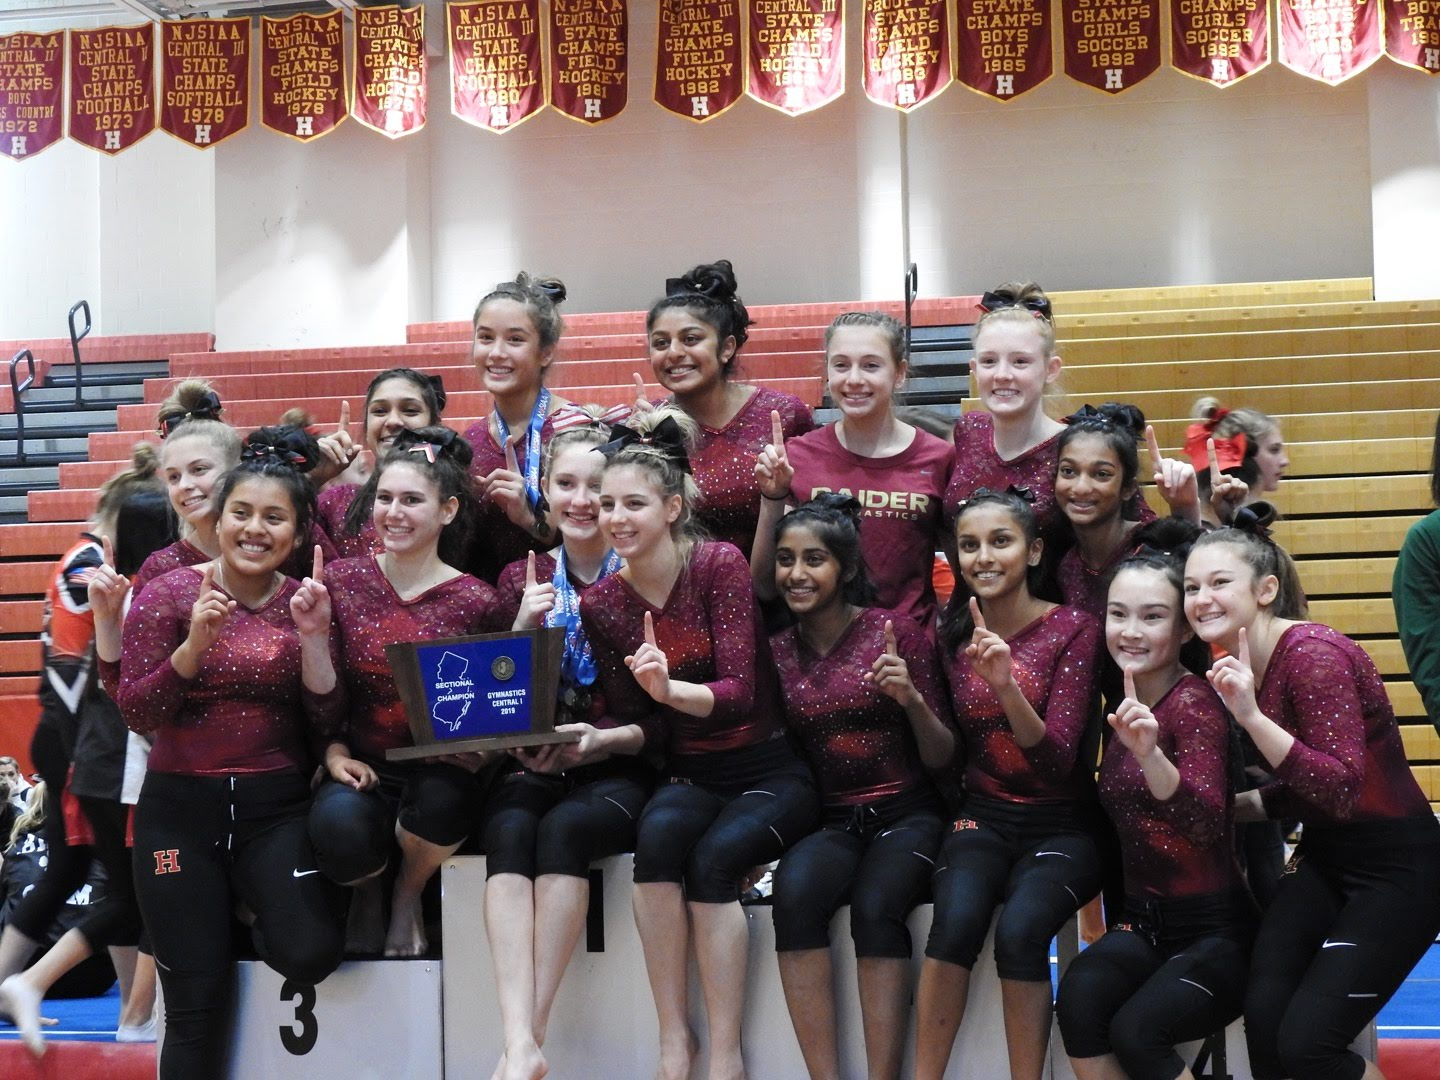 Hillsborough gymnasts celebrating their well deserved state championship.